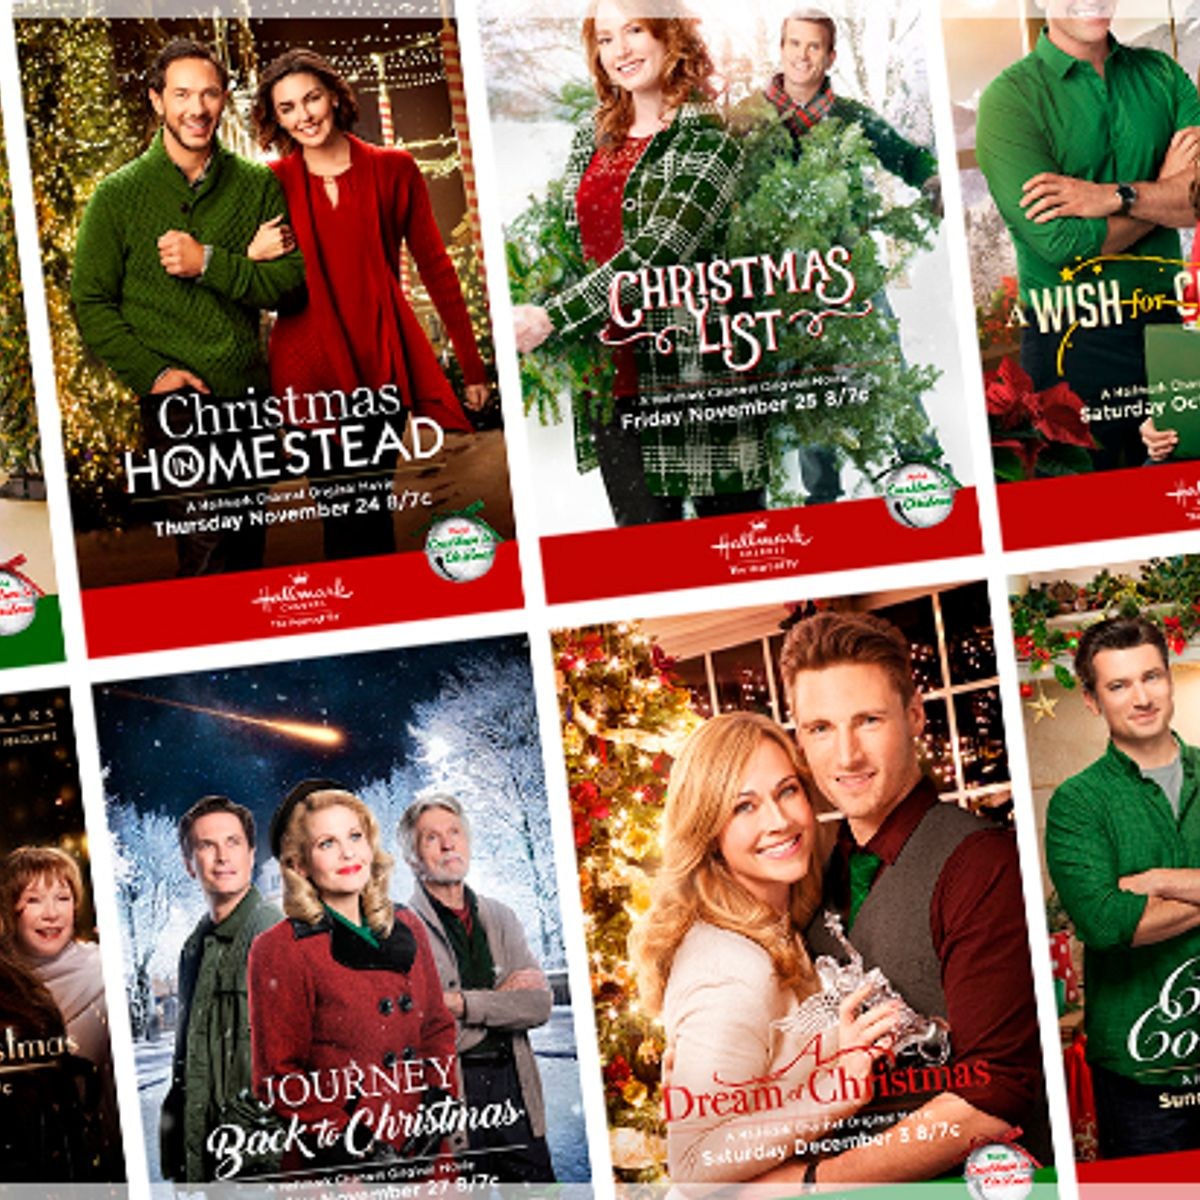 A Dream Of Christmas Hallmark.A Super White Christmas The Hallmark Channel Gives Us Tv S